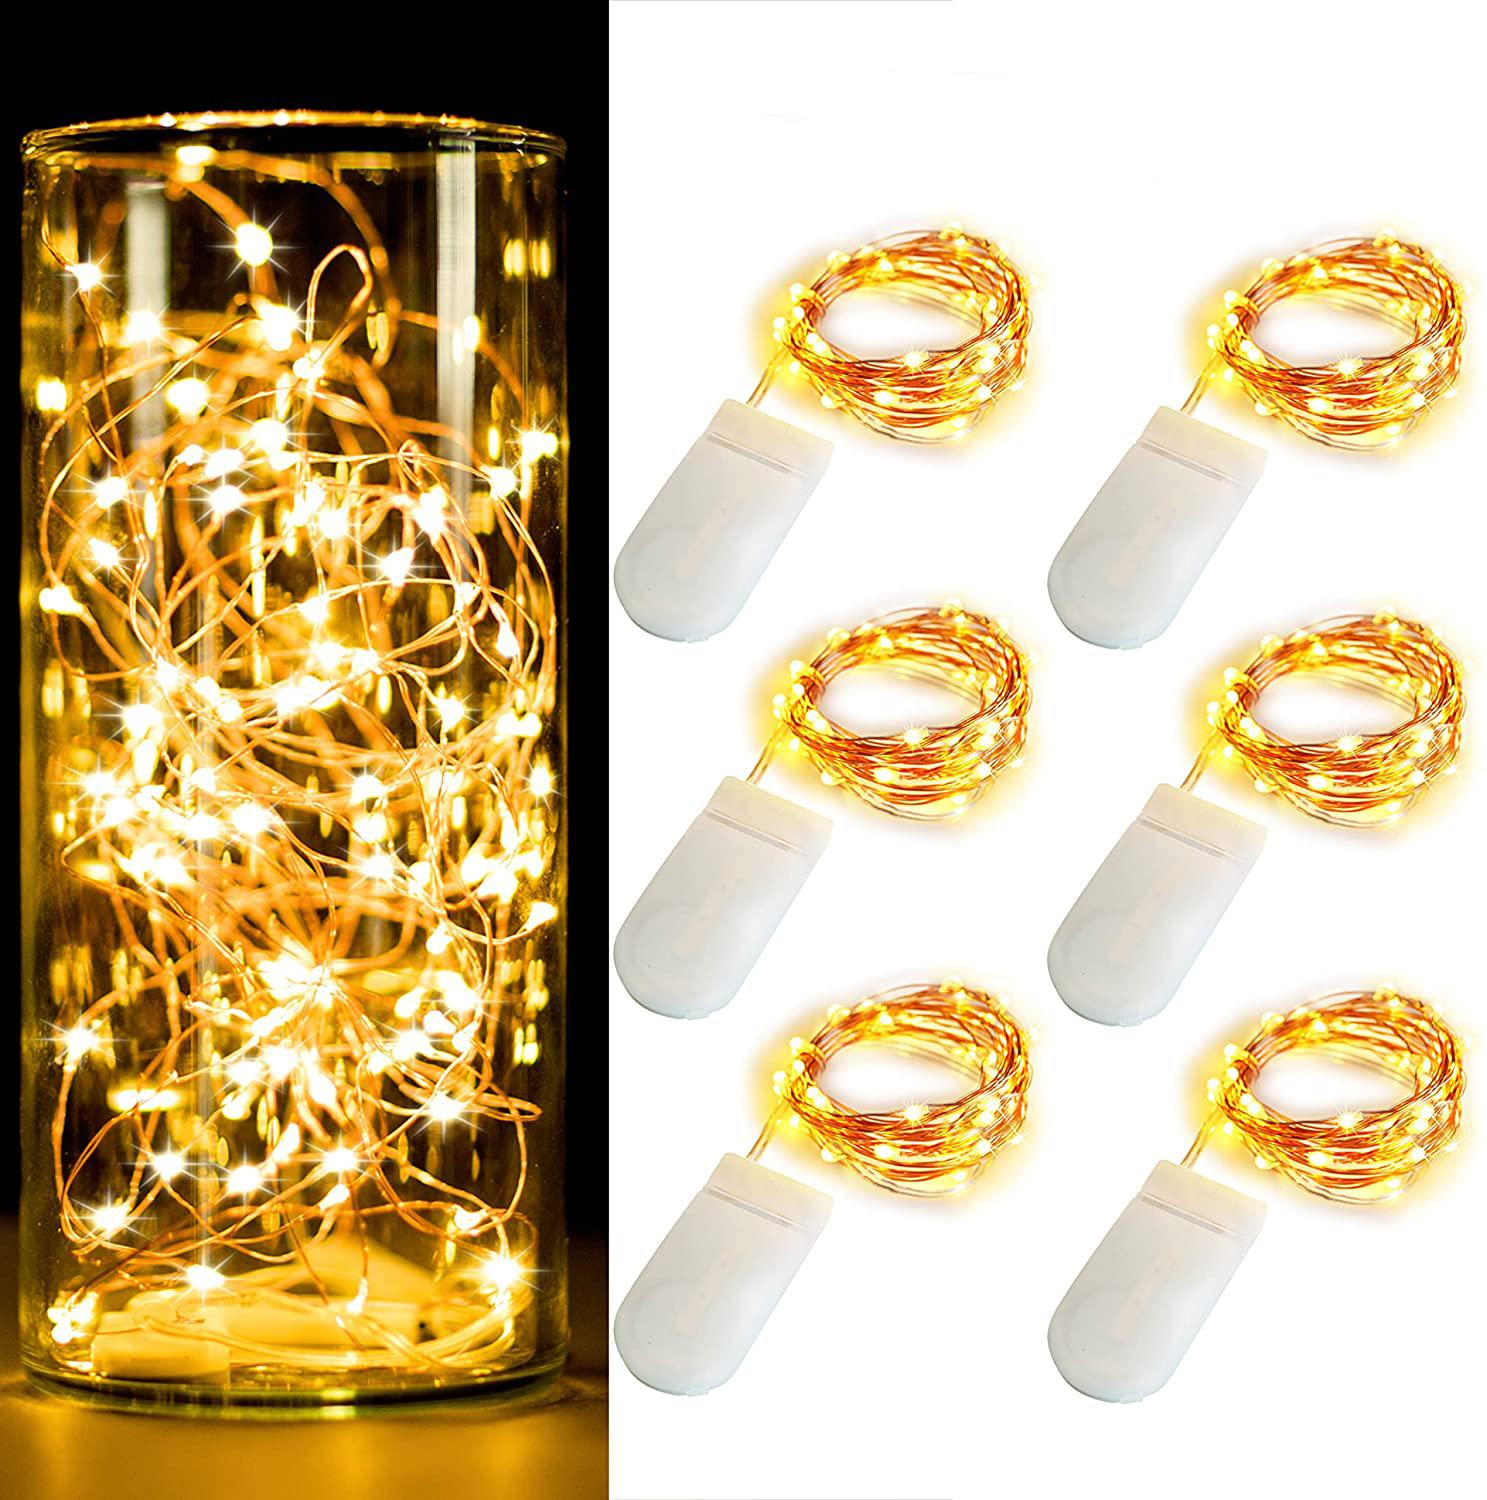 10pcs/lot 1M 2M 3M 5M LED Copper Wire String Light 2*CR2032 Battery Powered Christmas Wedding Party Ramadan Decoration Light